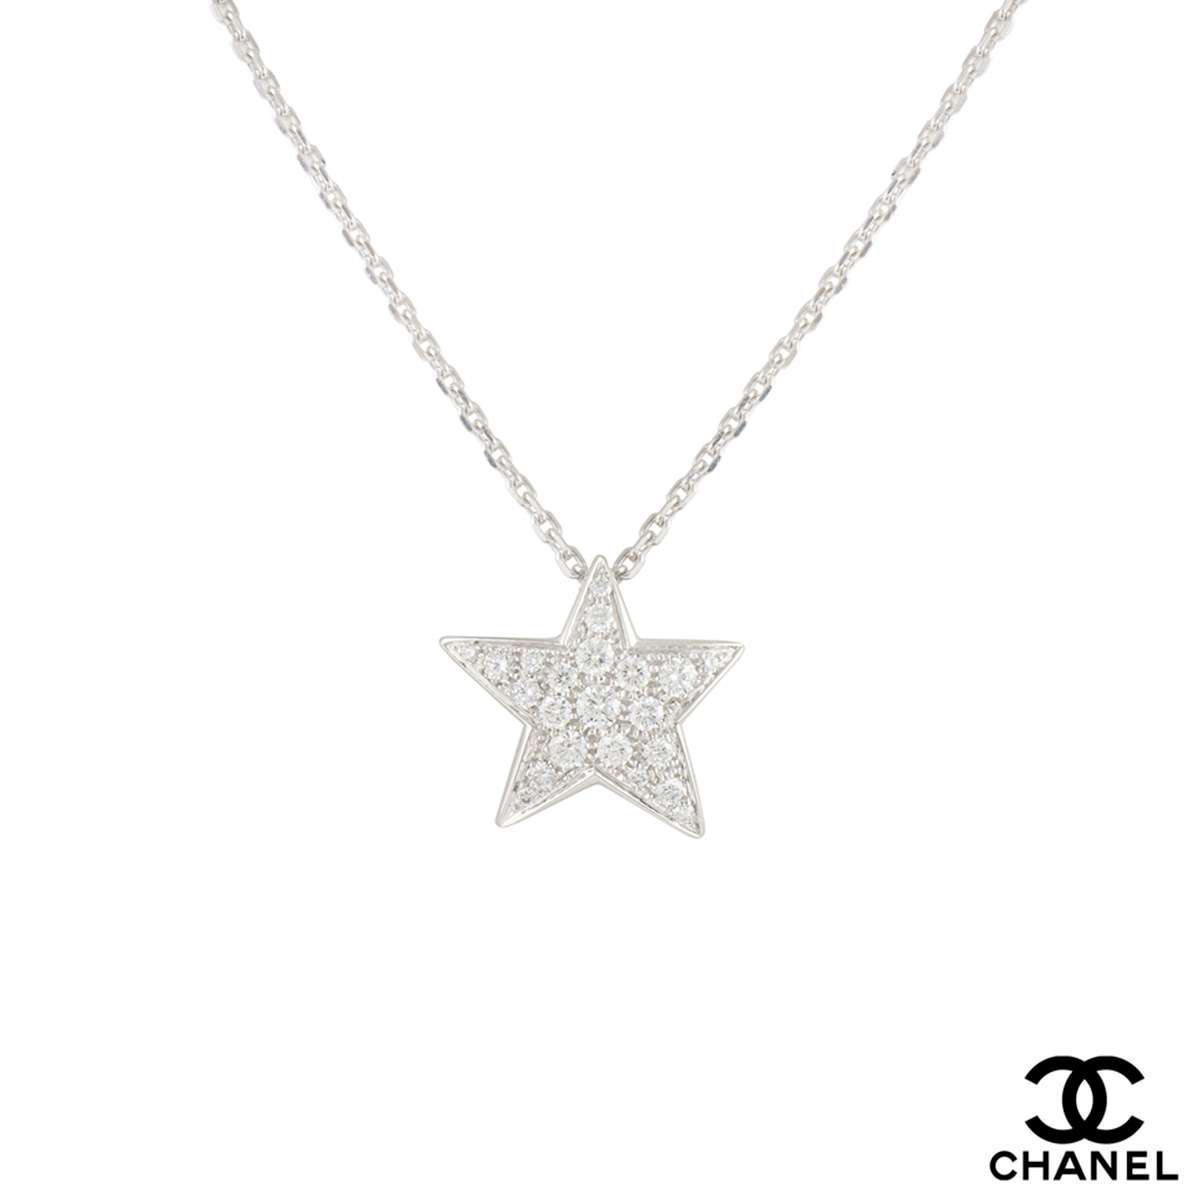 Chanel White Gold Diamond Comete Pendant 0.68ct D-F/VVS1 J0869